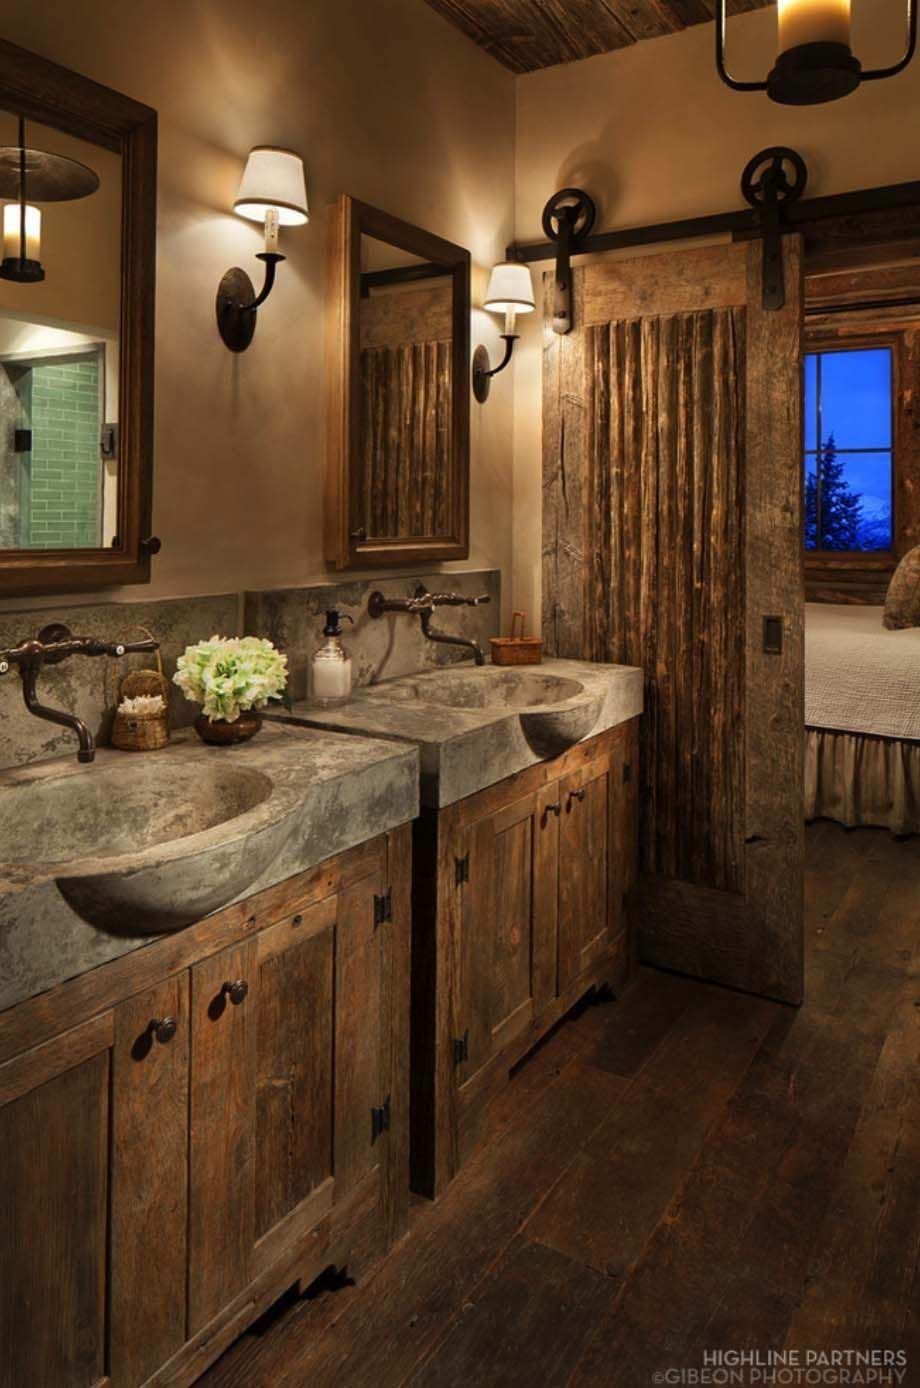 Rustic Design Ideas: Rustic Bathroom Décor With Concrete Sinks And Barn Door